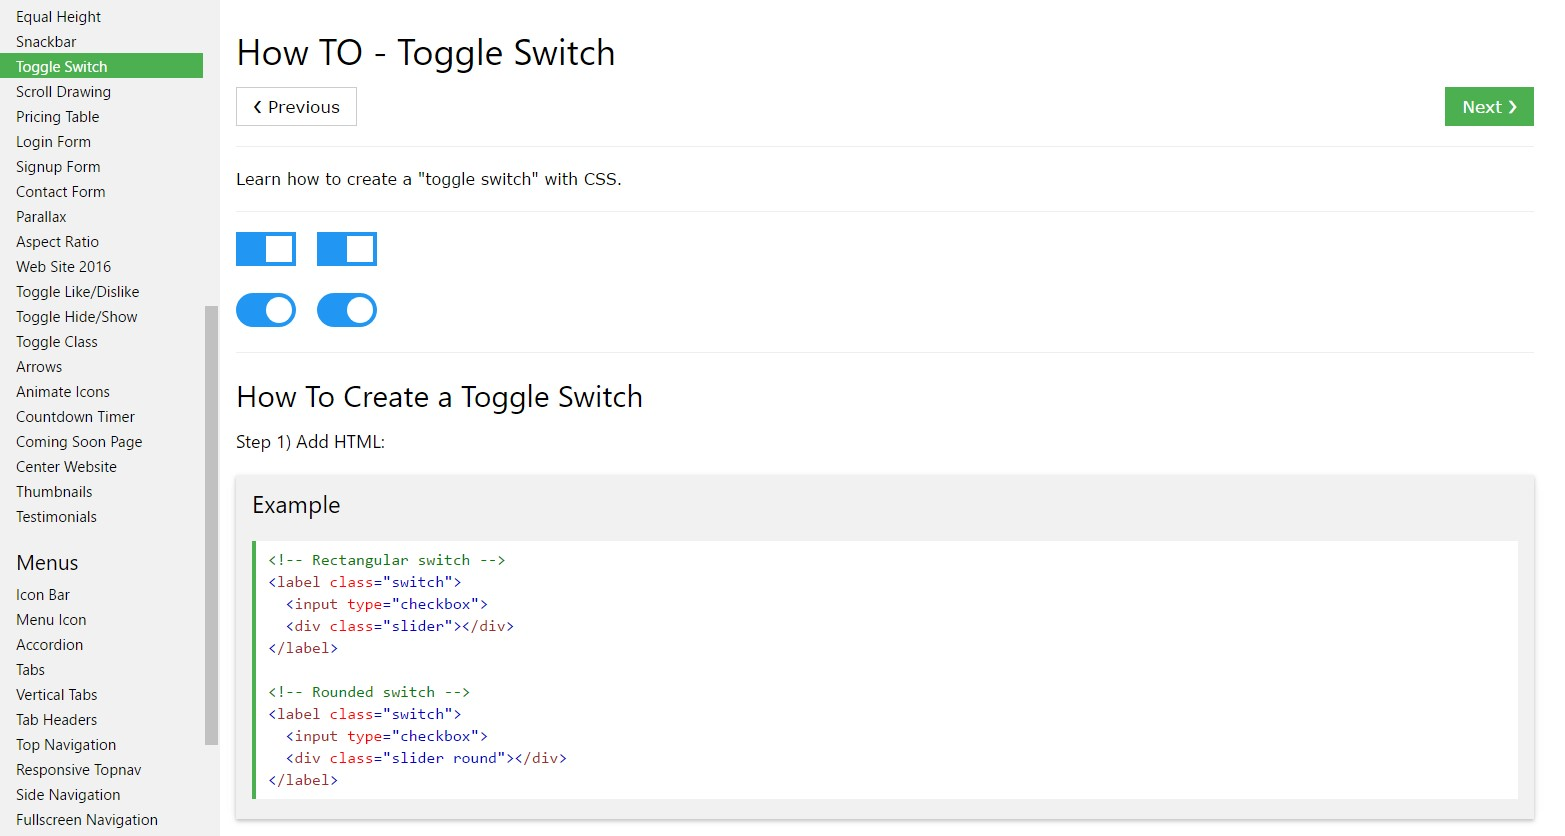 Tips on how to  set up Toggle Switch